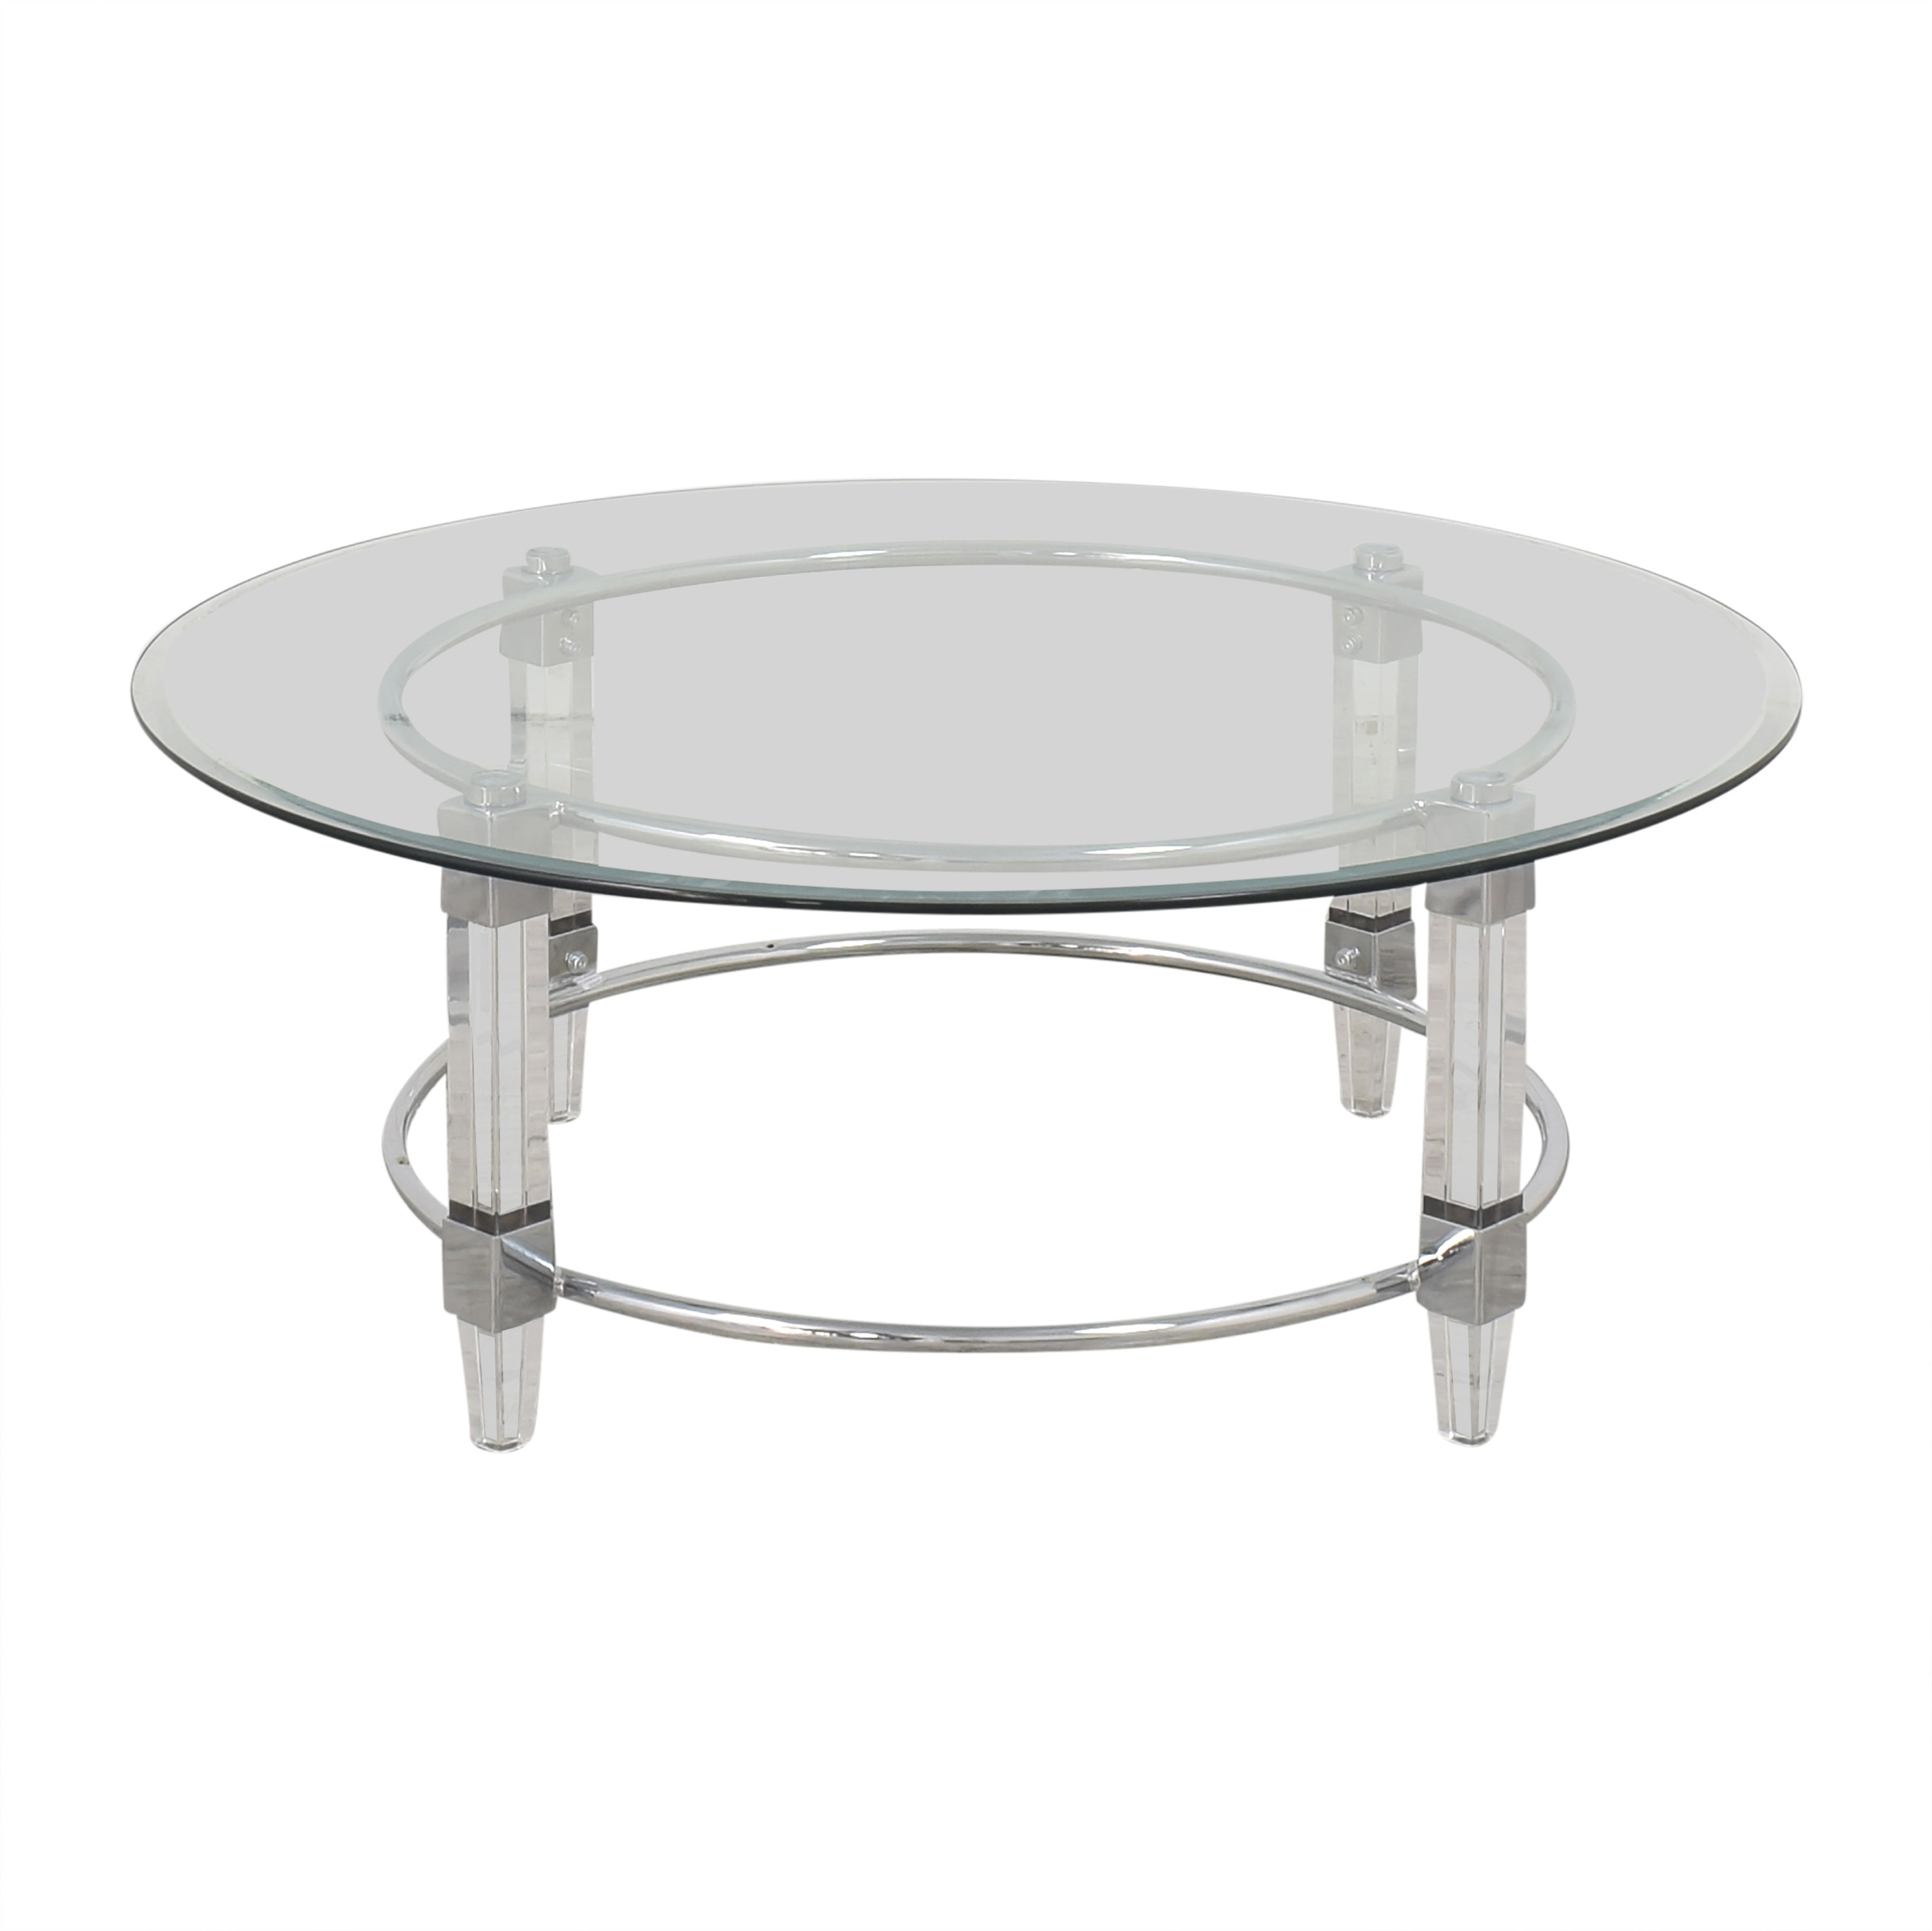 buy Raymour & Flanigan Greta Round Cocktail Table Raymour & Flanigan Tables